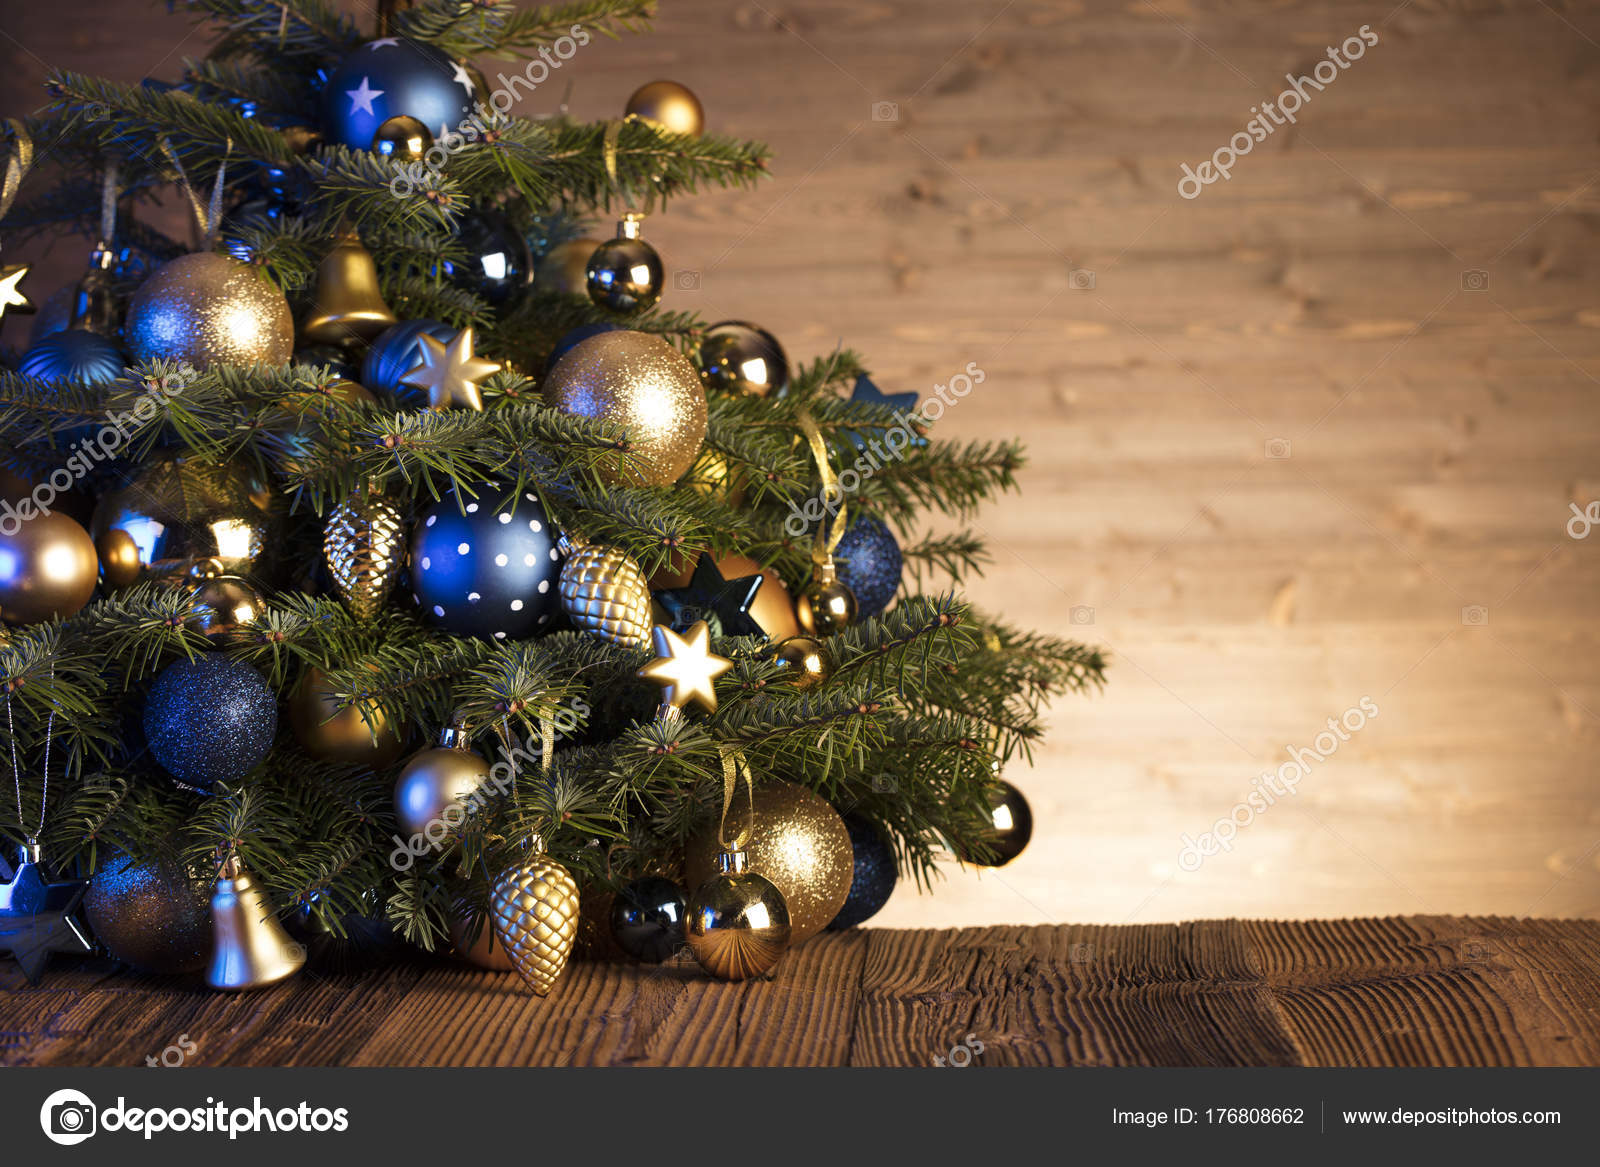 Christmas Decorations Blue Gold Aesthetics Rustic Wooden Table Place Text Stock Photo Image By C Zolnierek 176808662